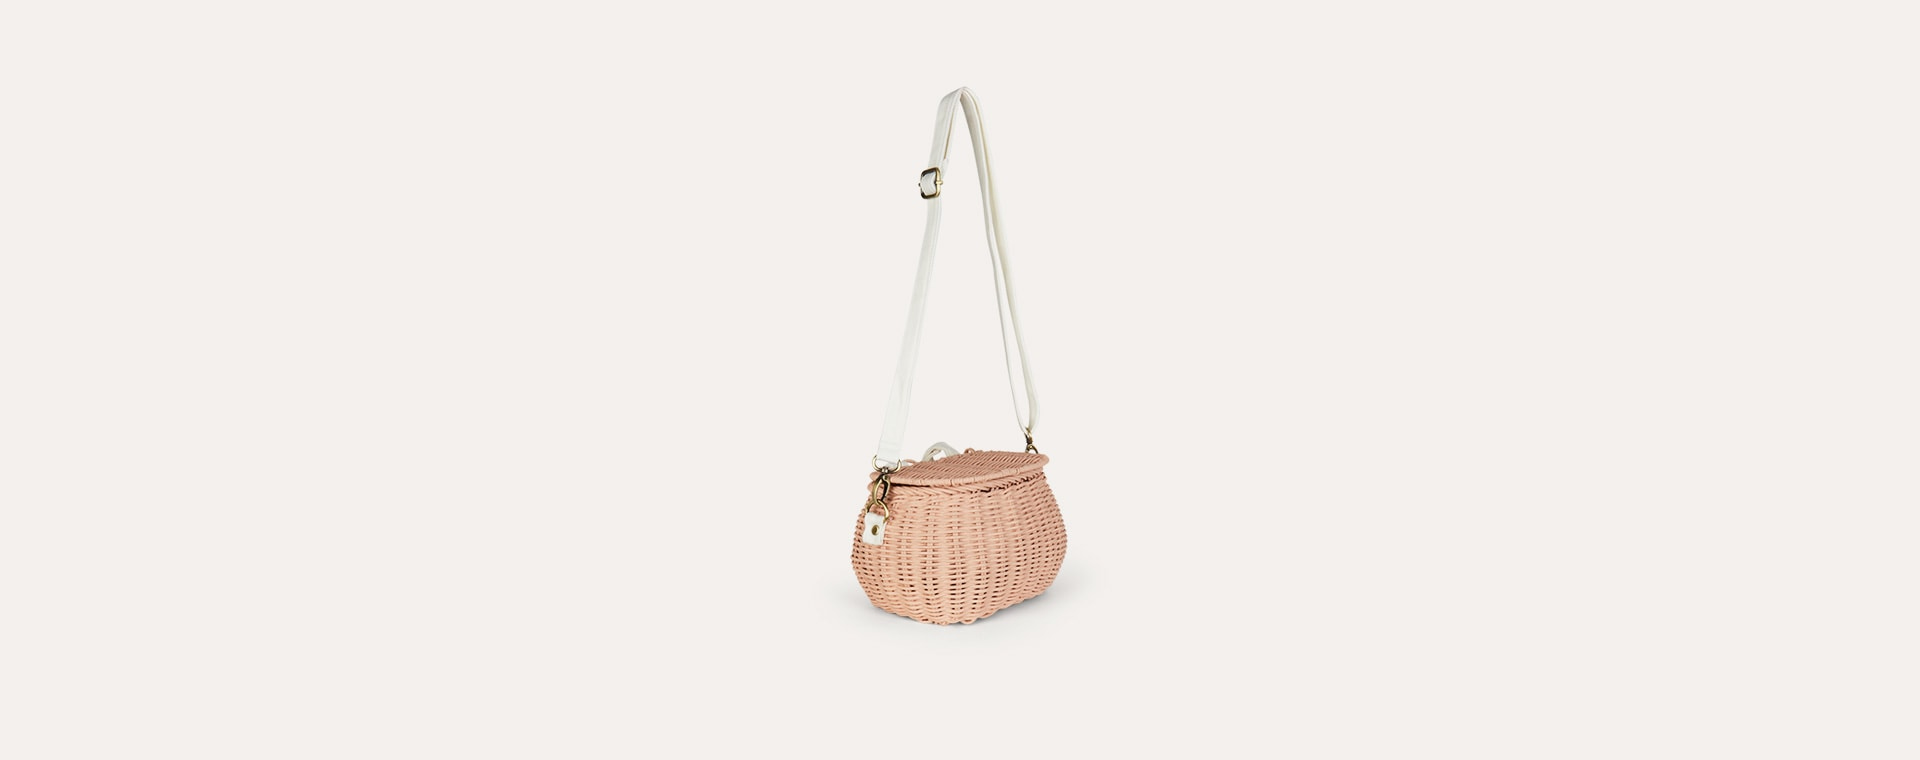 Rose Olli Ella Chari Bag